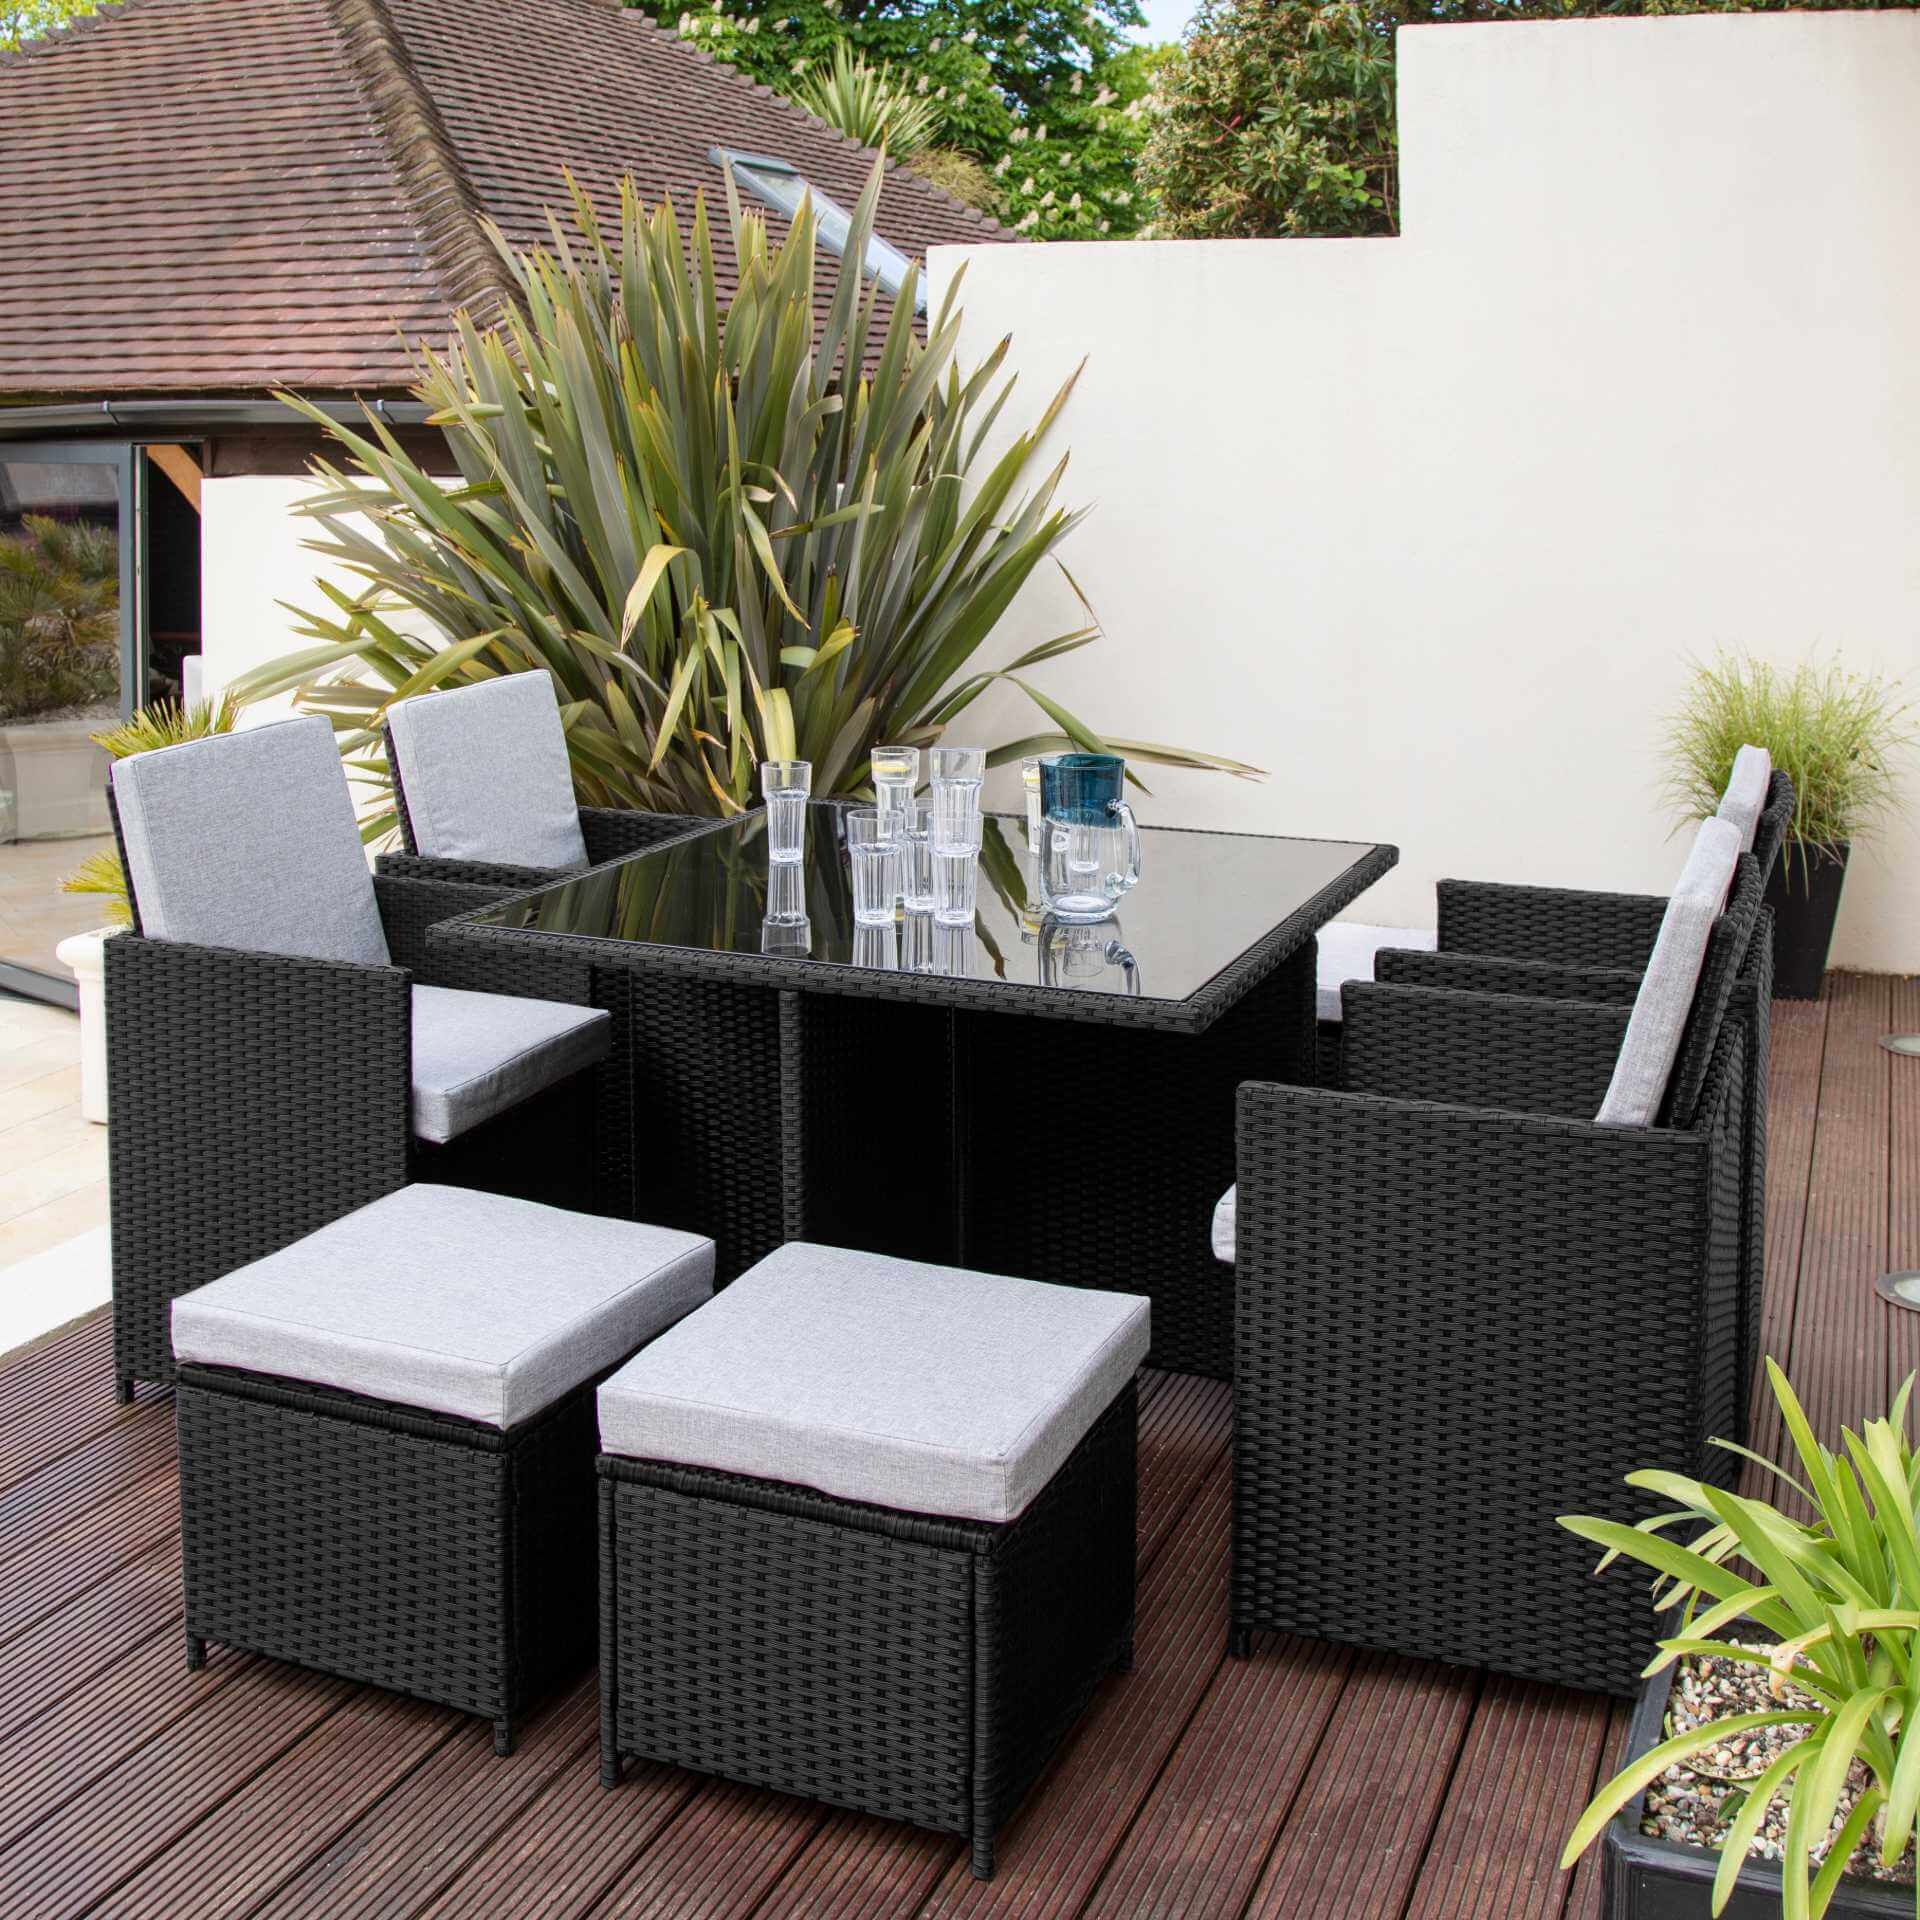 8 Seater Rattan Cube Outdoor Dining Set - Black Weave - Laura James